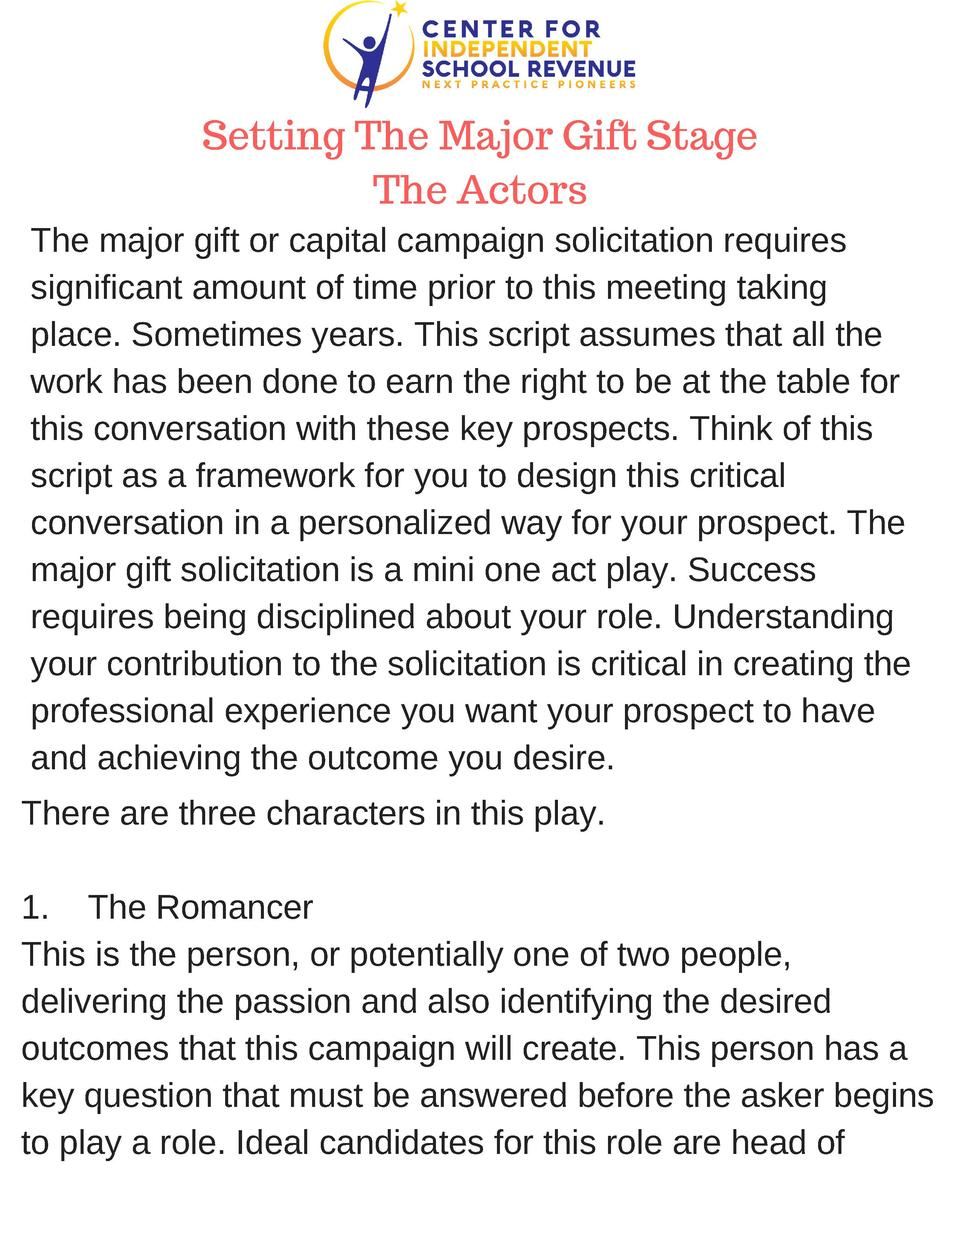 Setting The Major Gift Stage The Actors The major gift or capital campaign solicitation requires significant amount of tim...